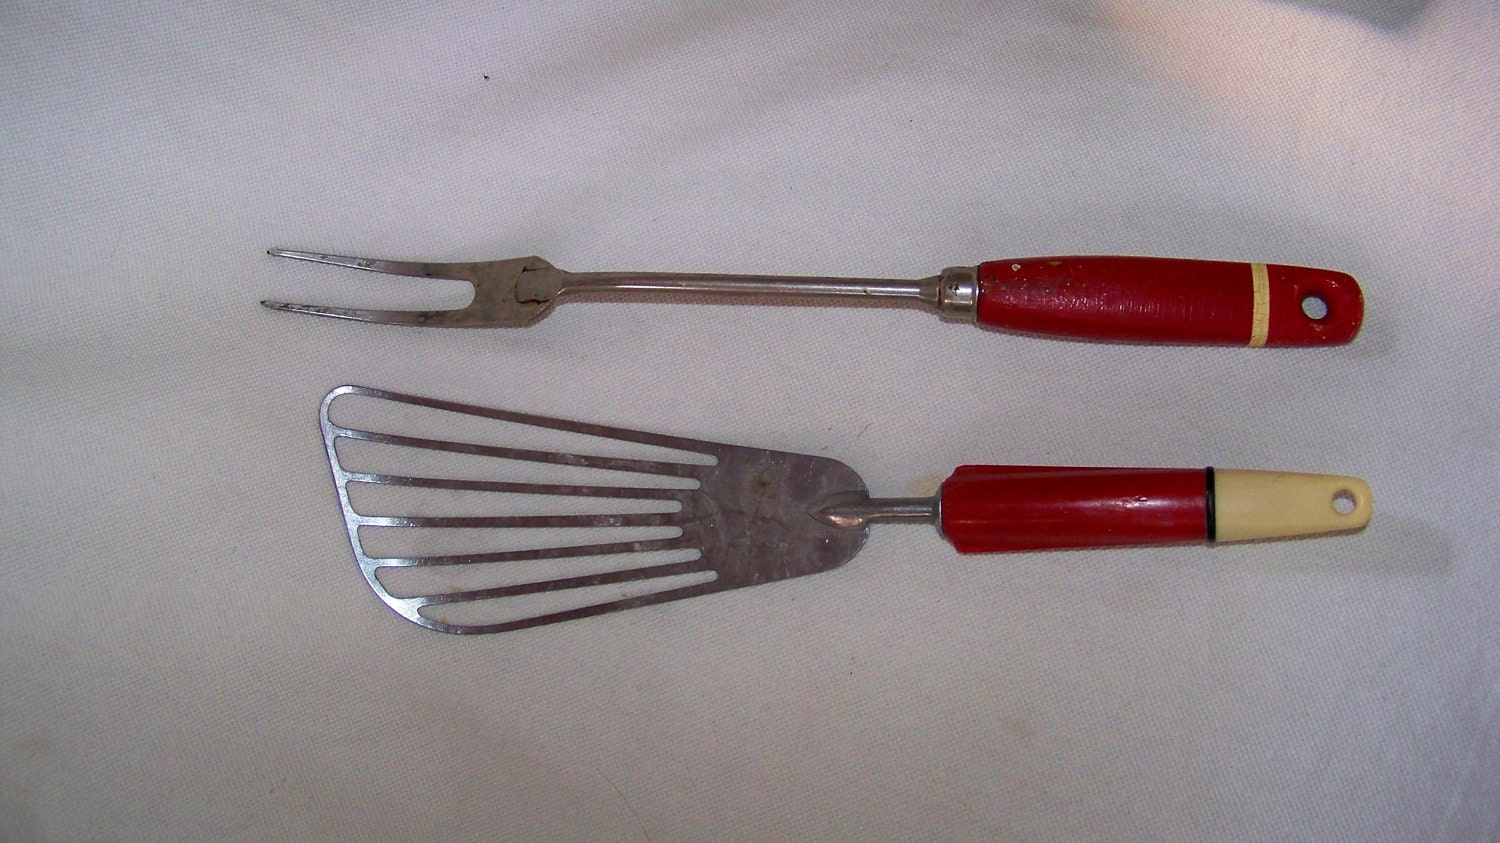 Vintage Stainless Steel Kitchen Utensils With Red Handles